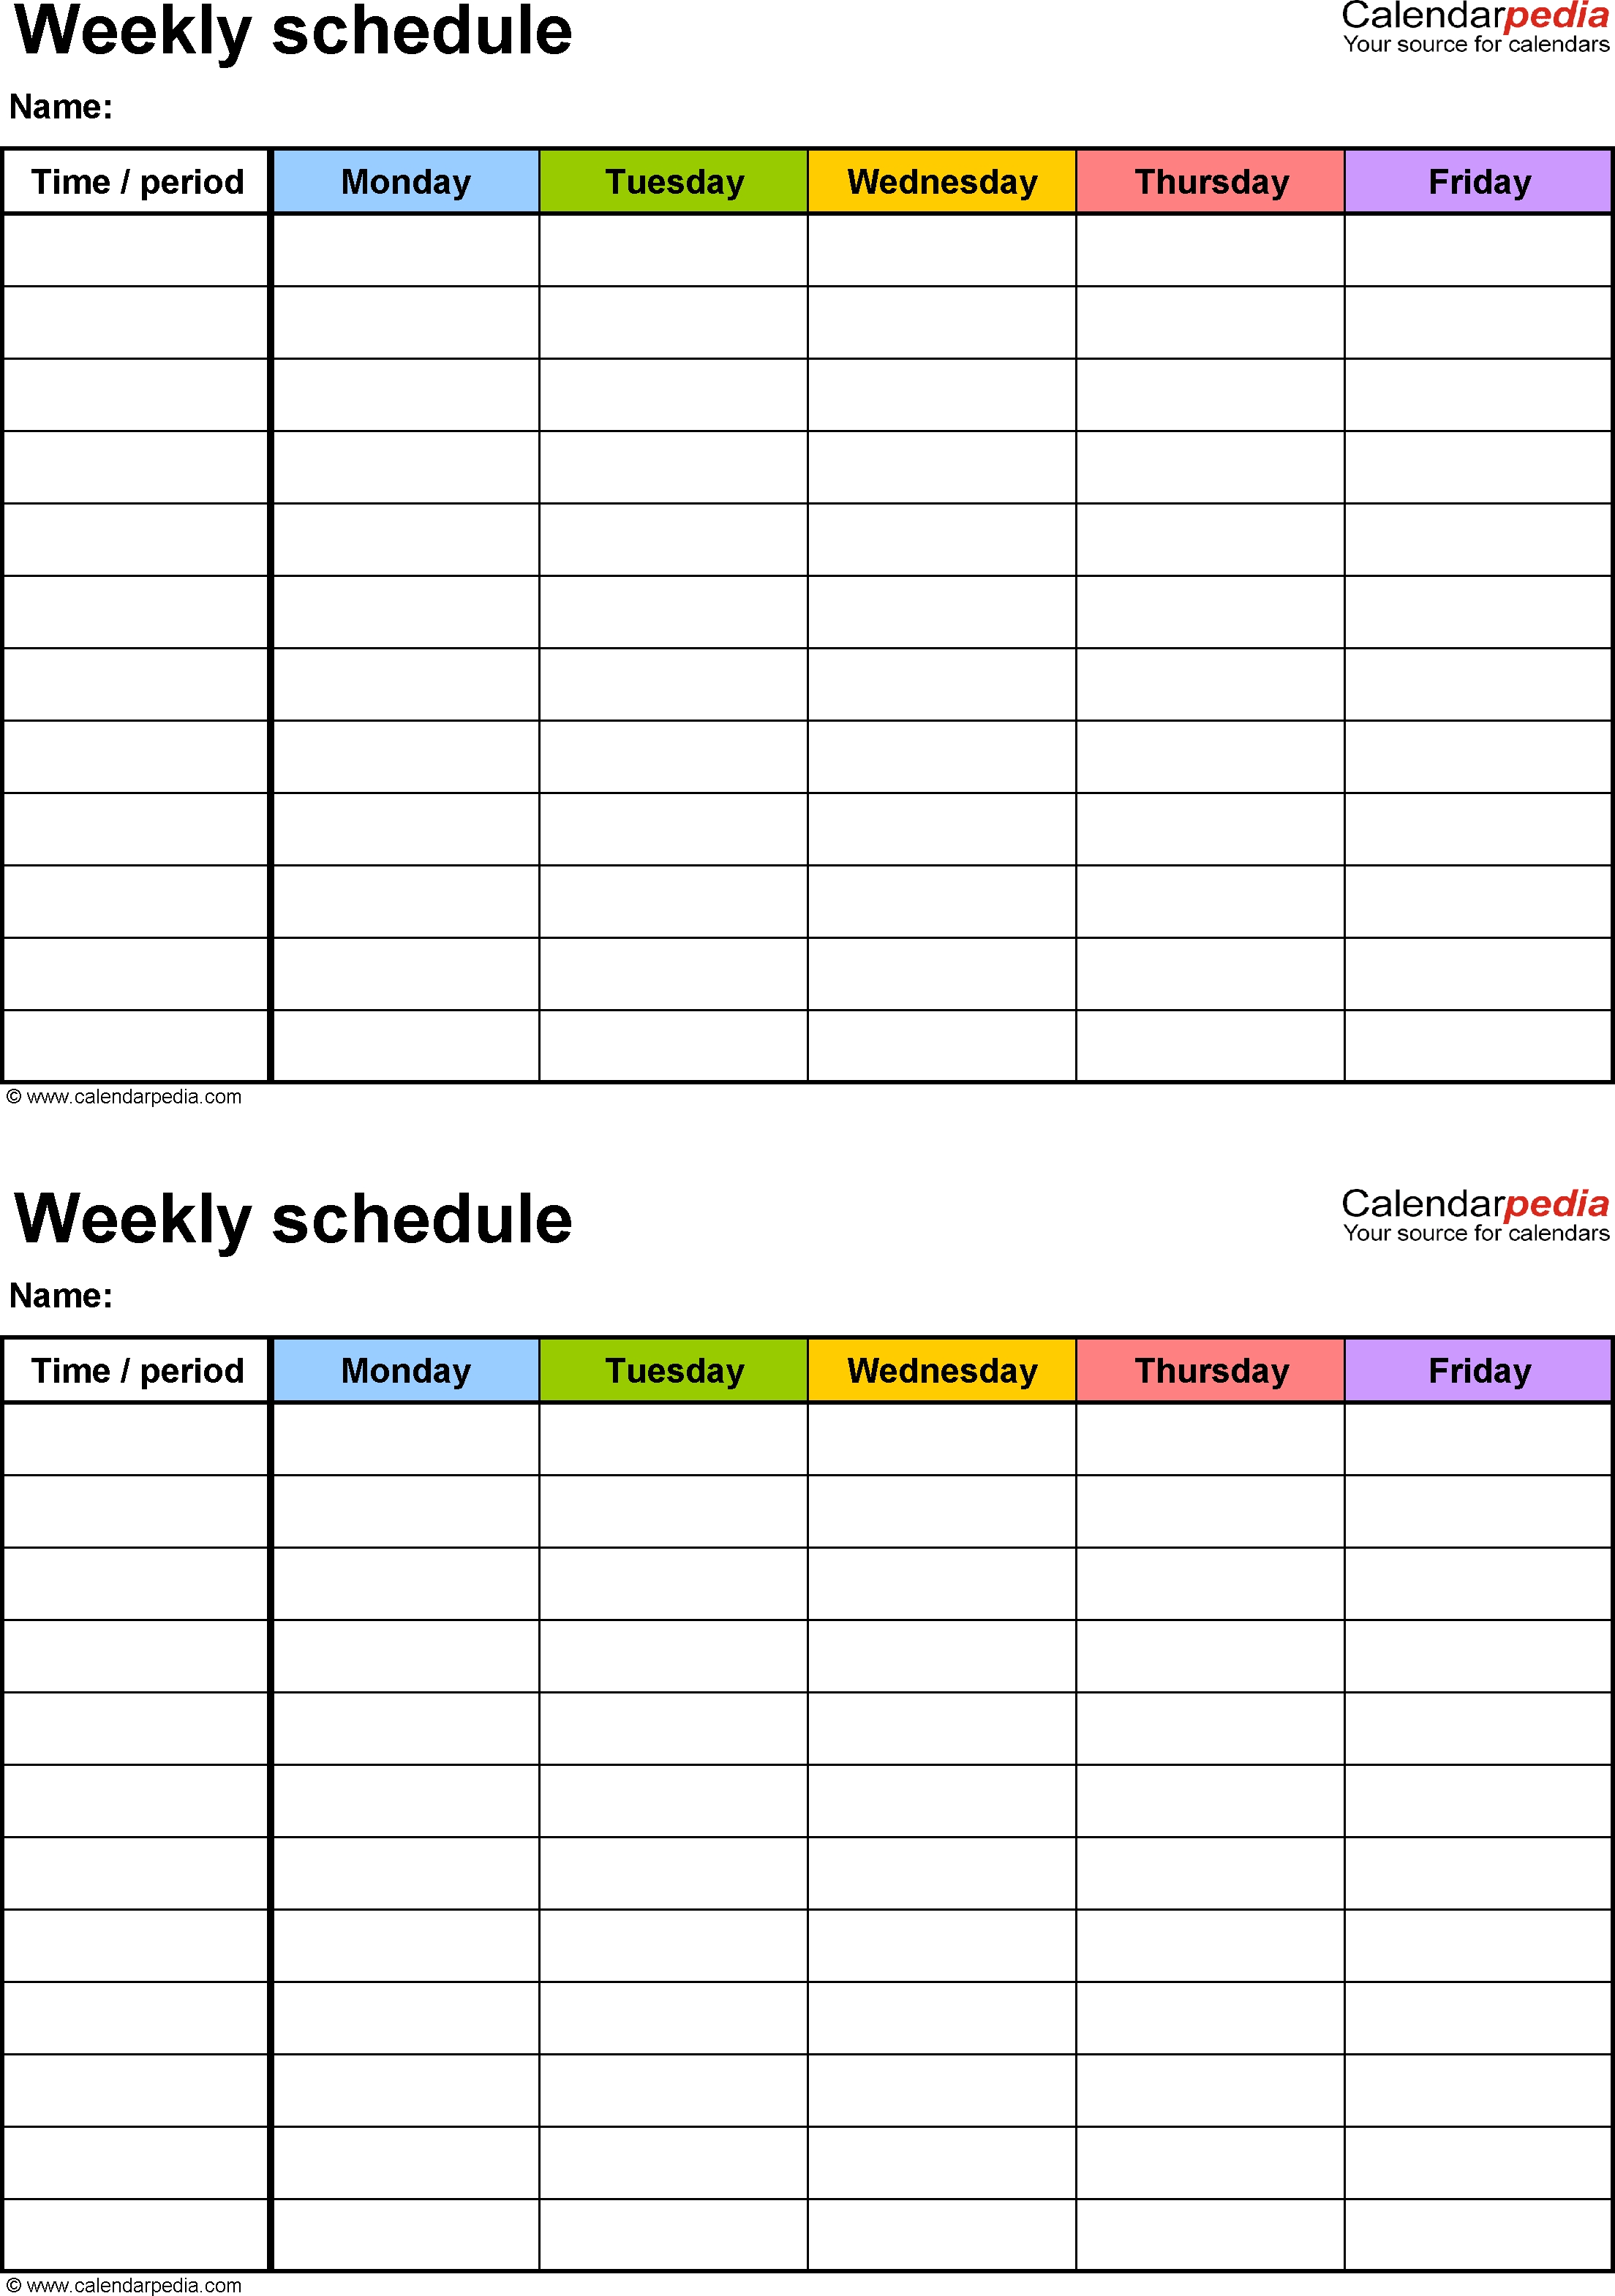 Free Weekly Schedule Templates For Word - 18 Templates Blank Monday Through Friday Schedule Word